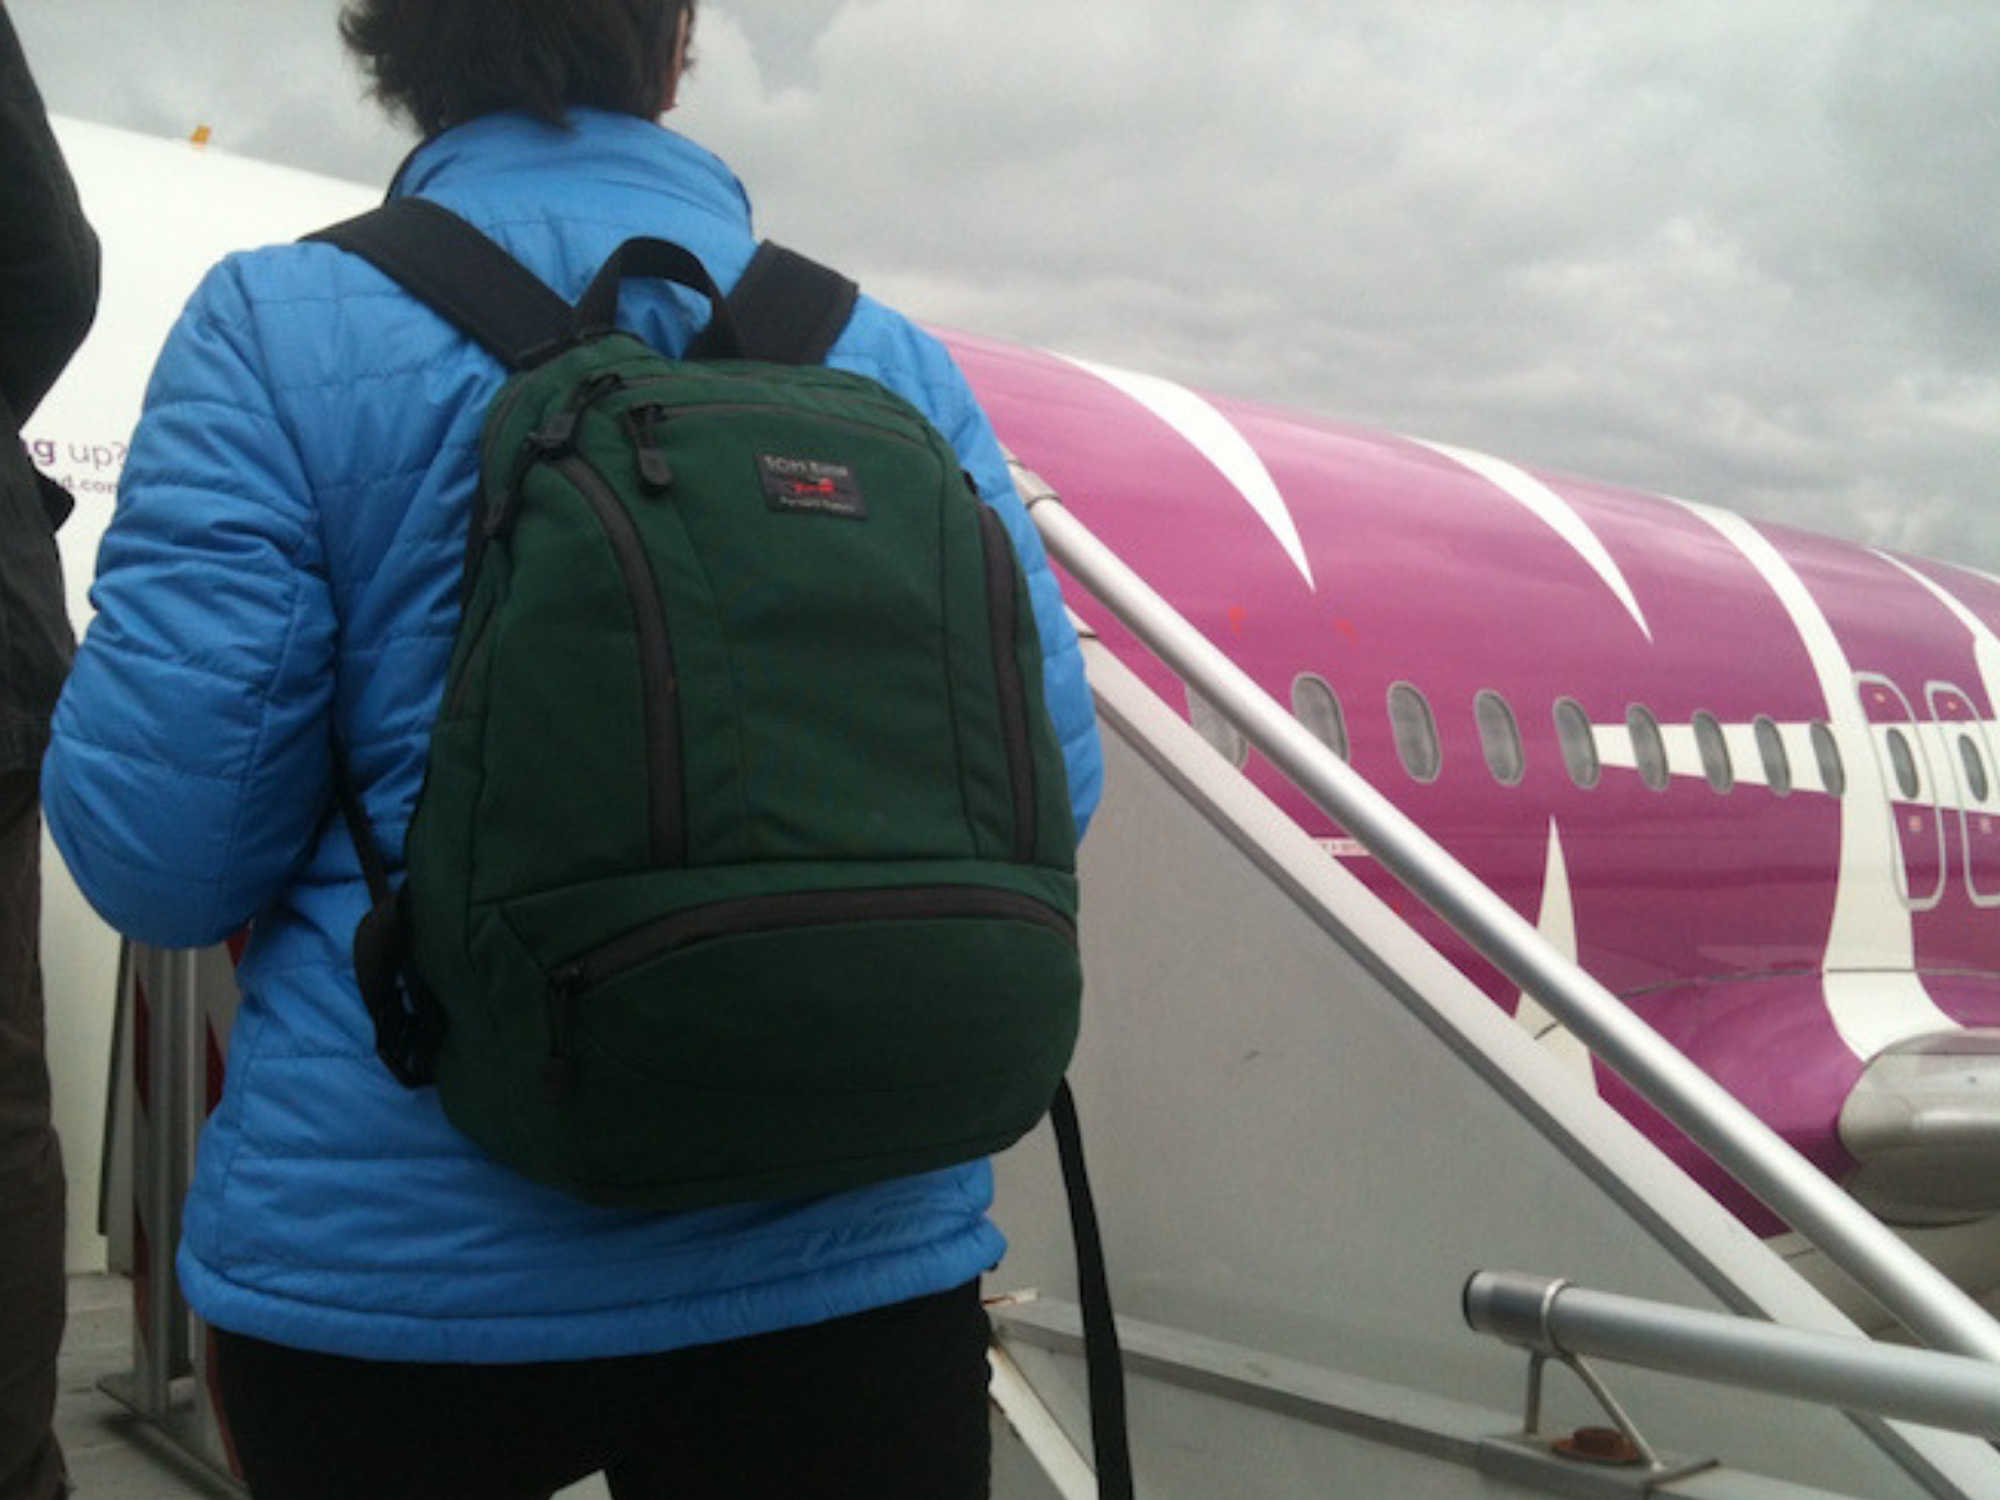 How to travel with only a single bag?